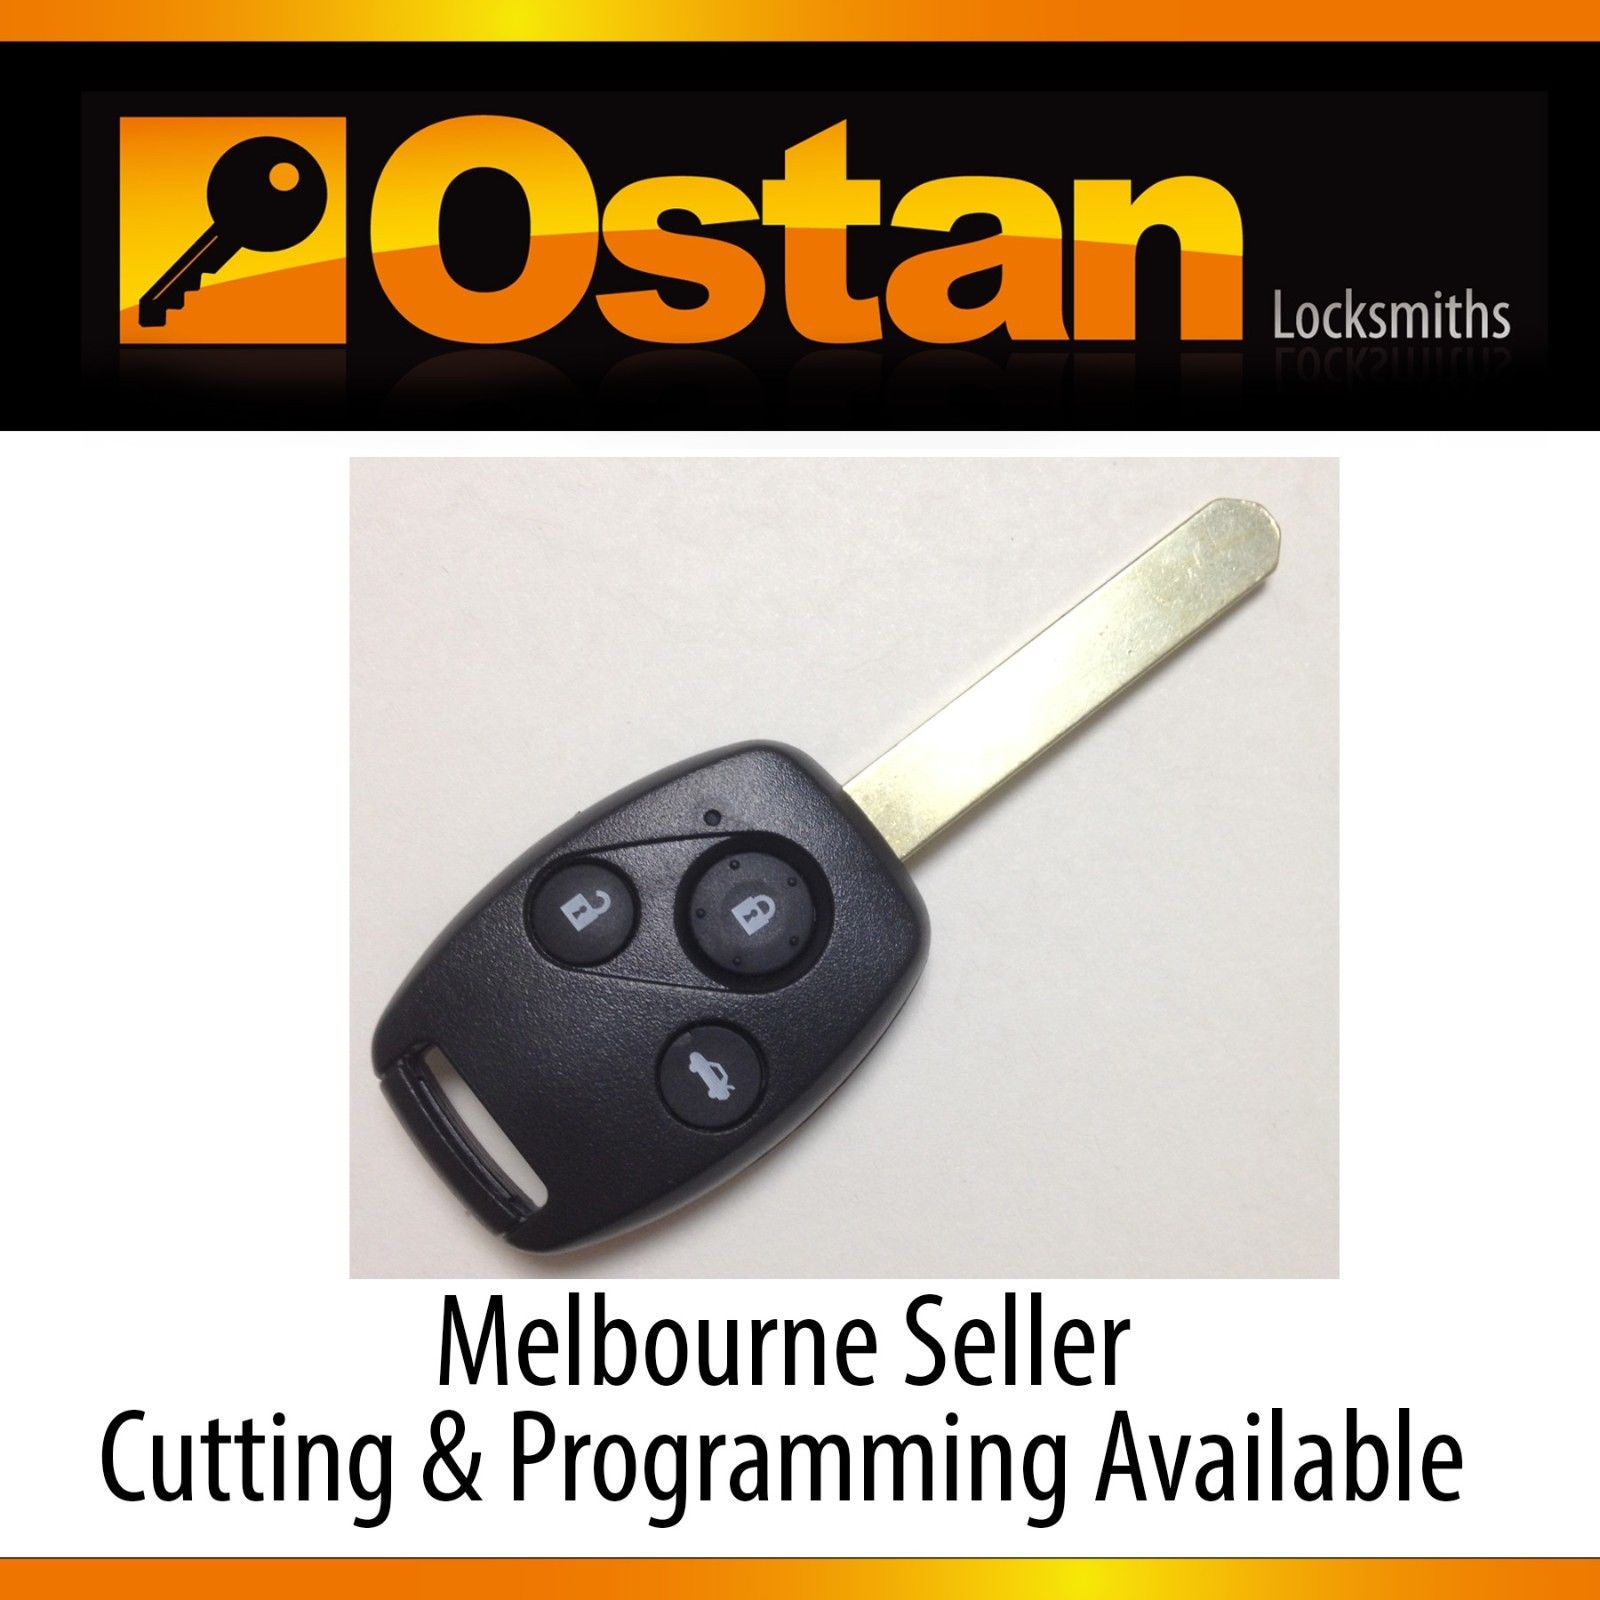 Complete Key & Remote to suit Honda Accord Euro, 2003-2007 (Aftermarket)